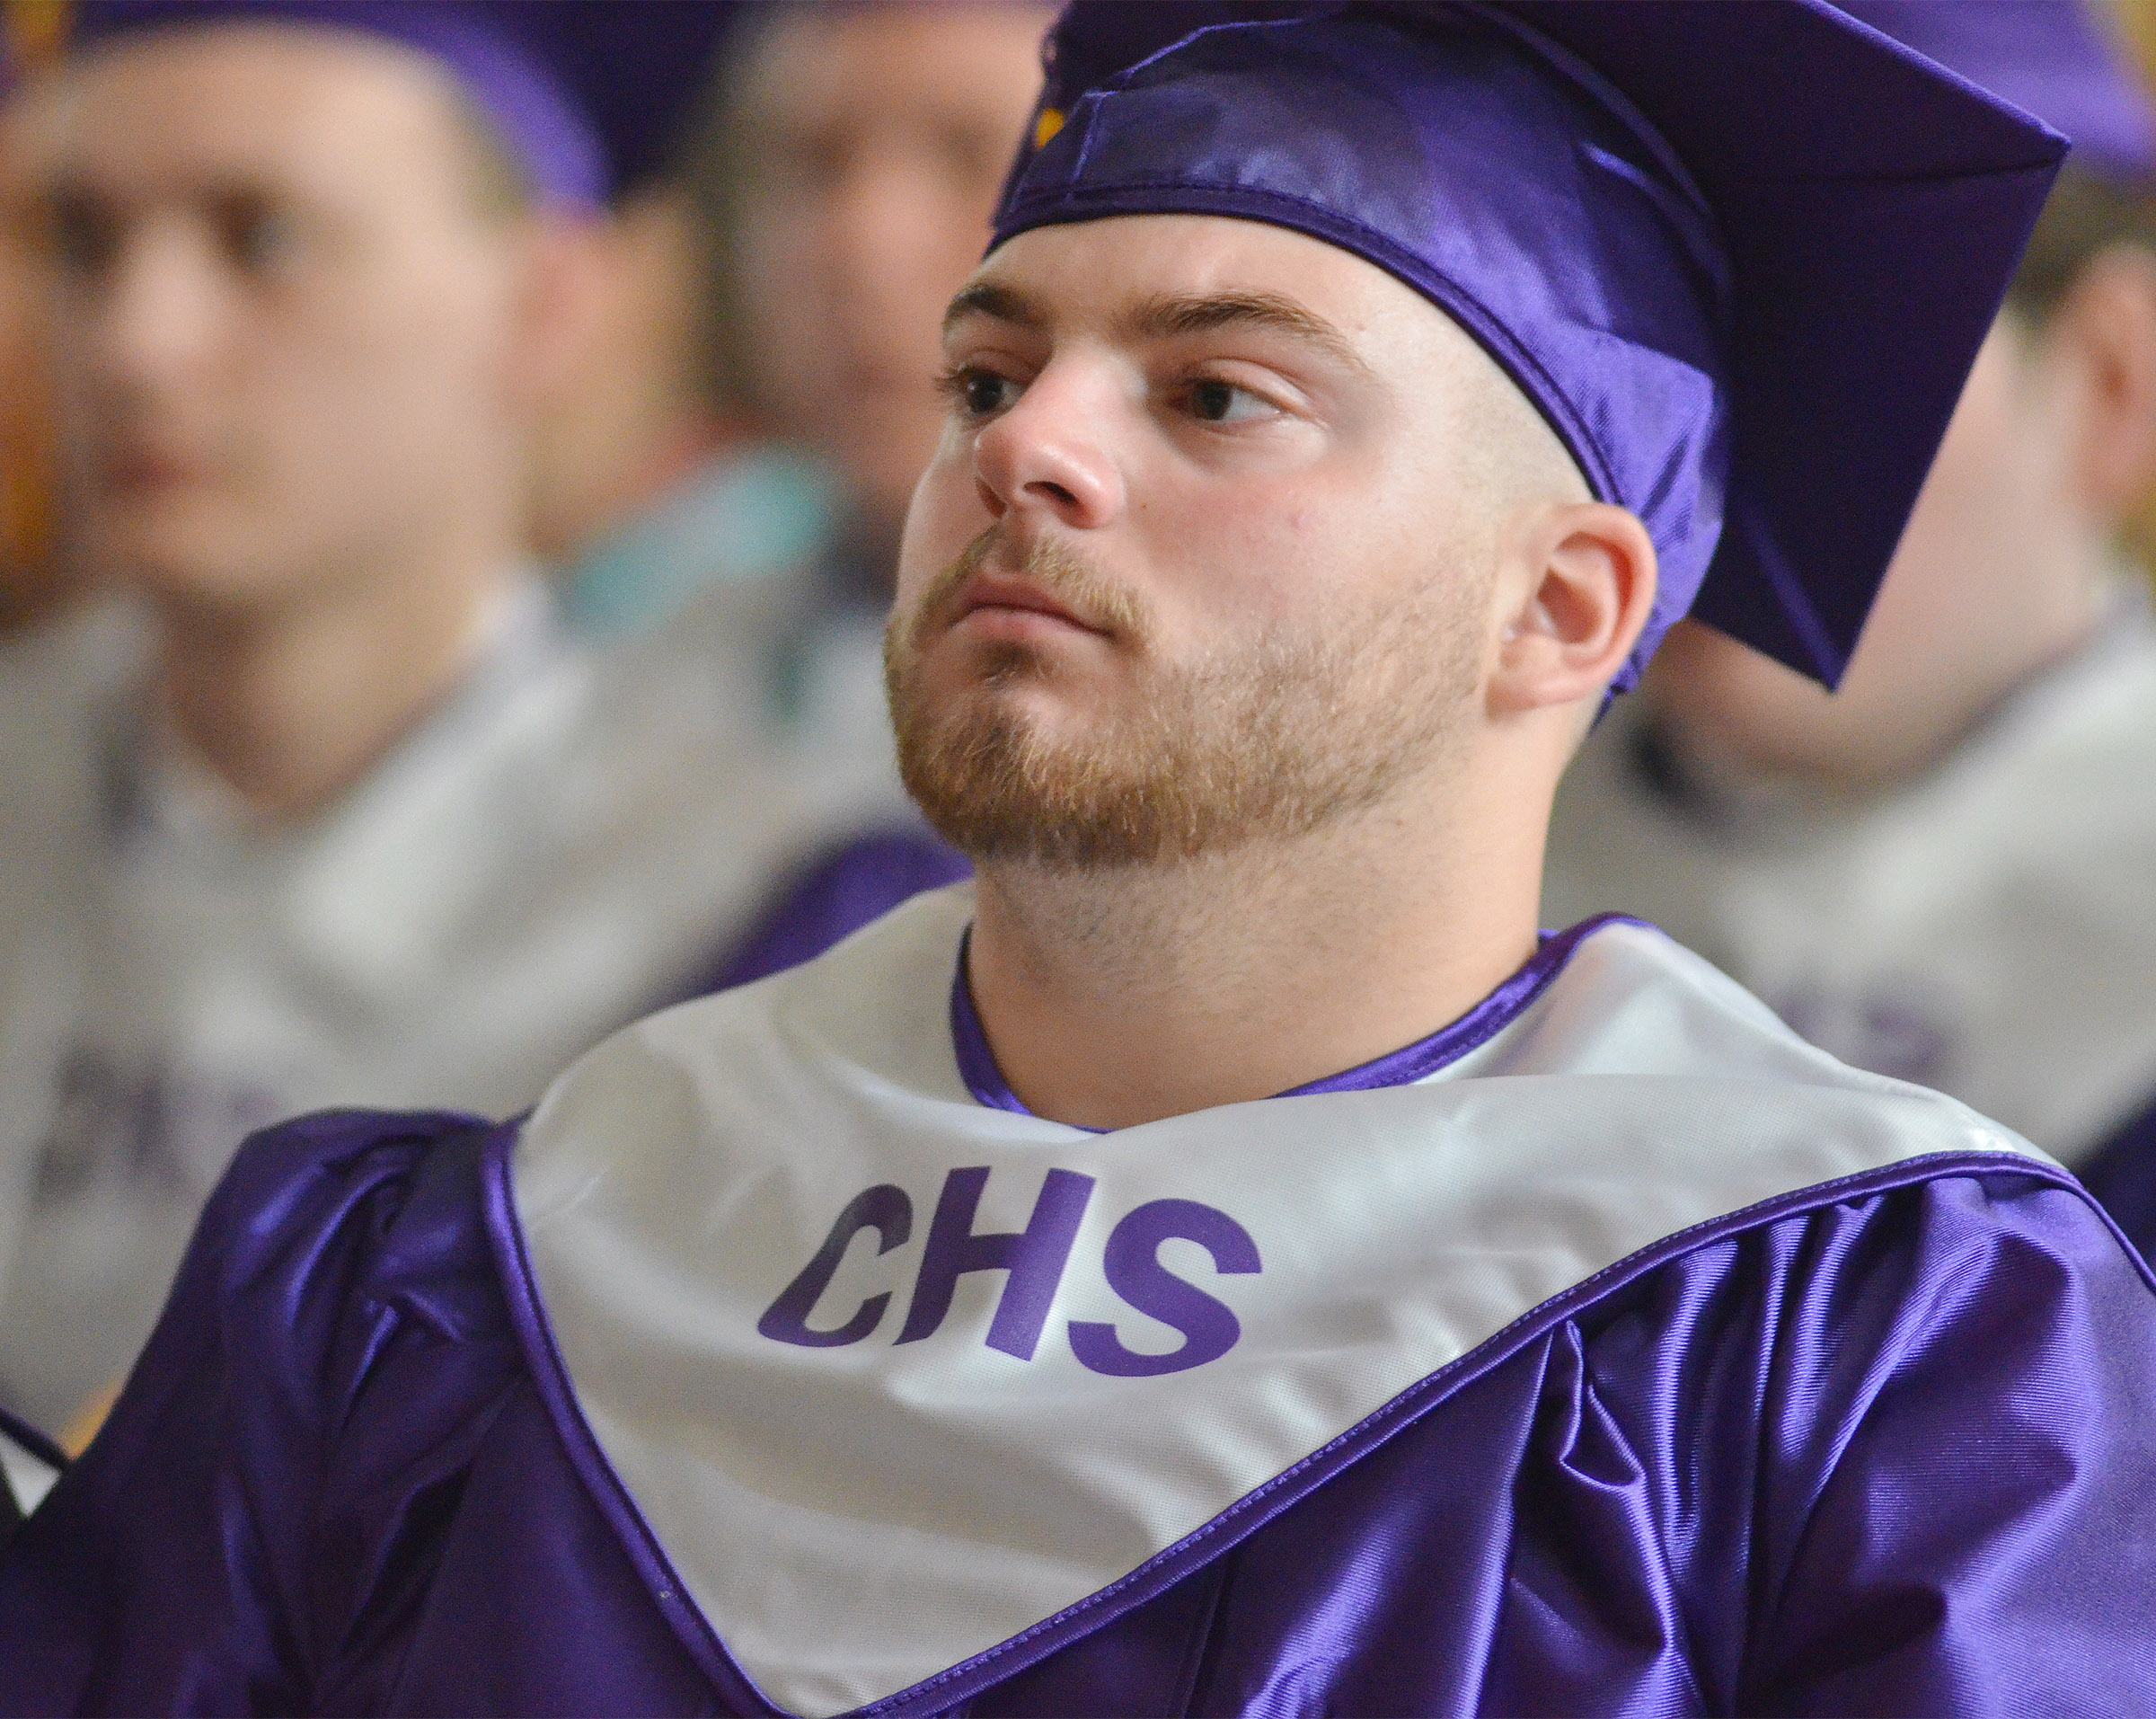 CHS senior Jon Tanner Coppage listens as Principal Kirby Smith addresses his class.